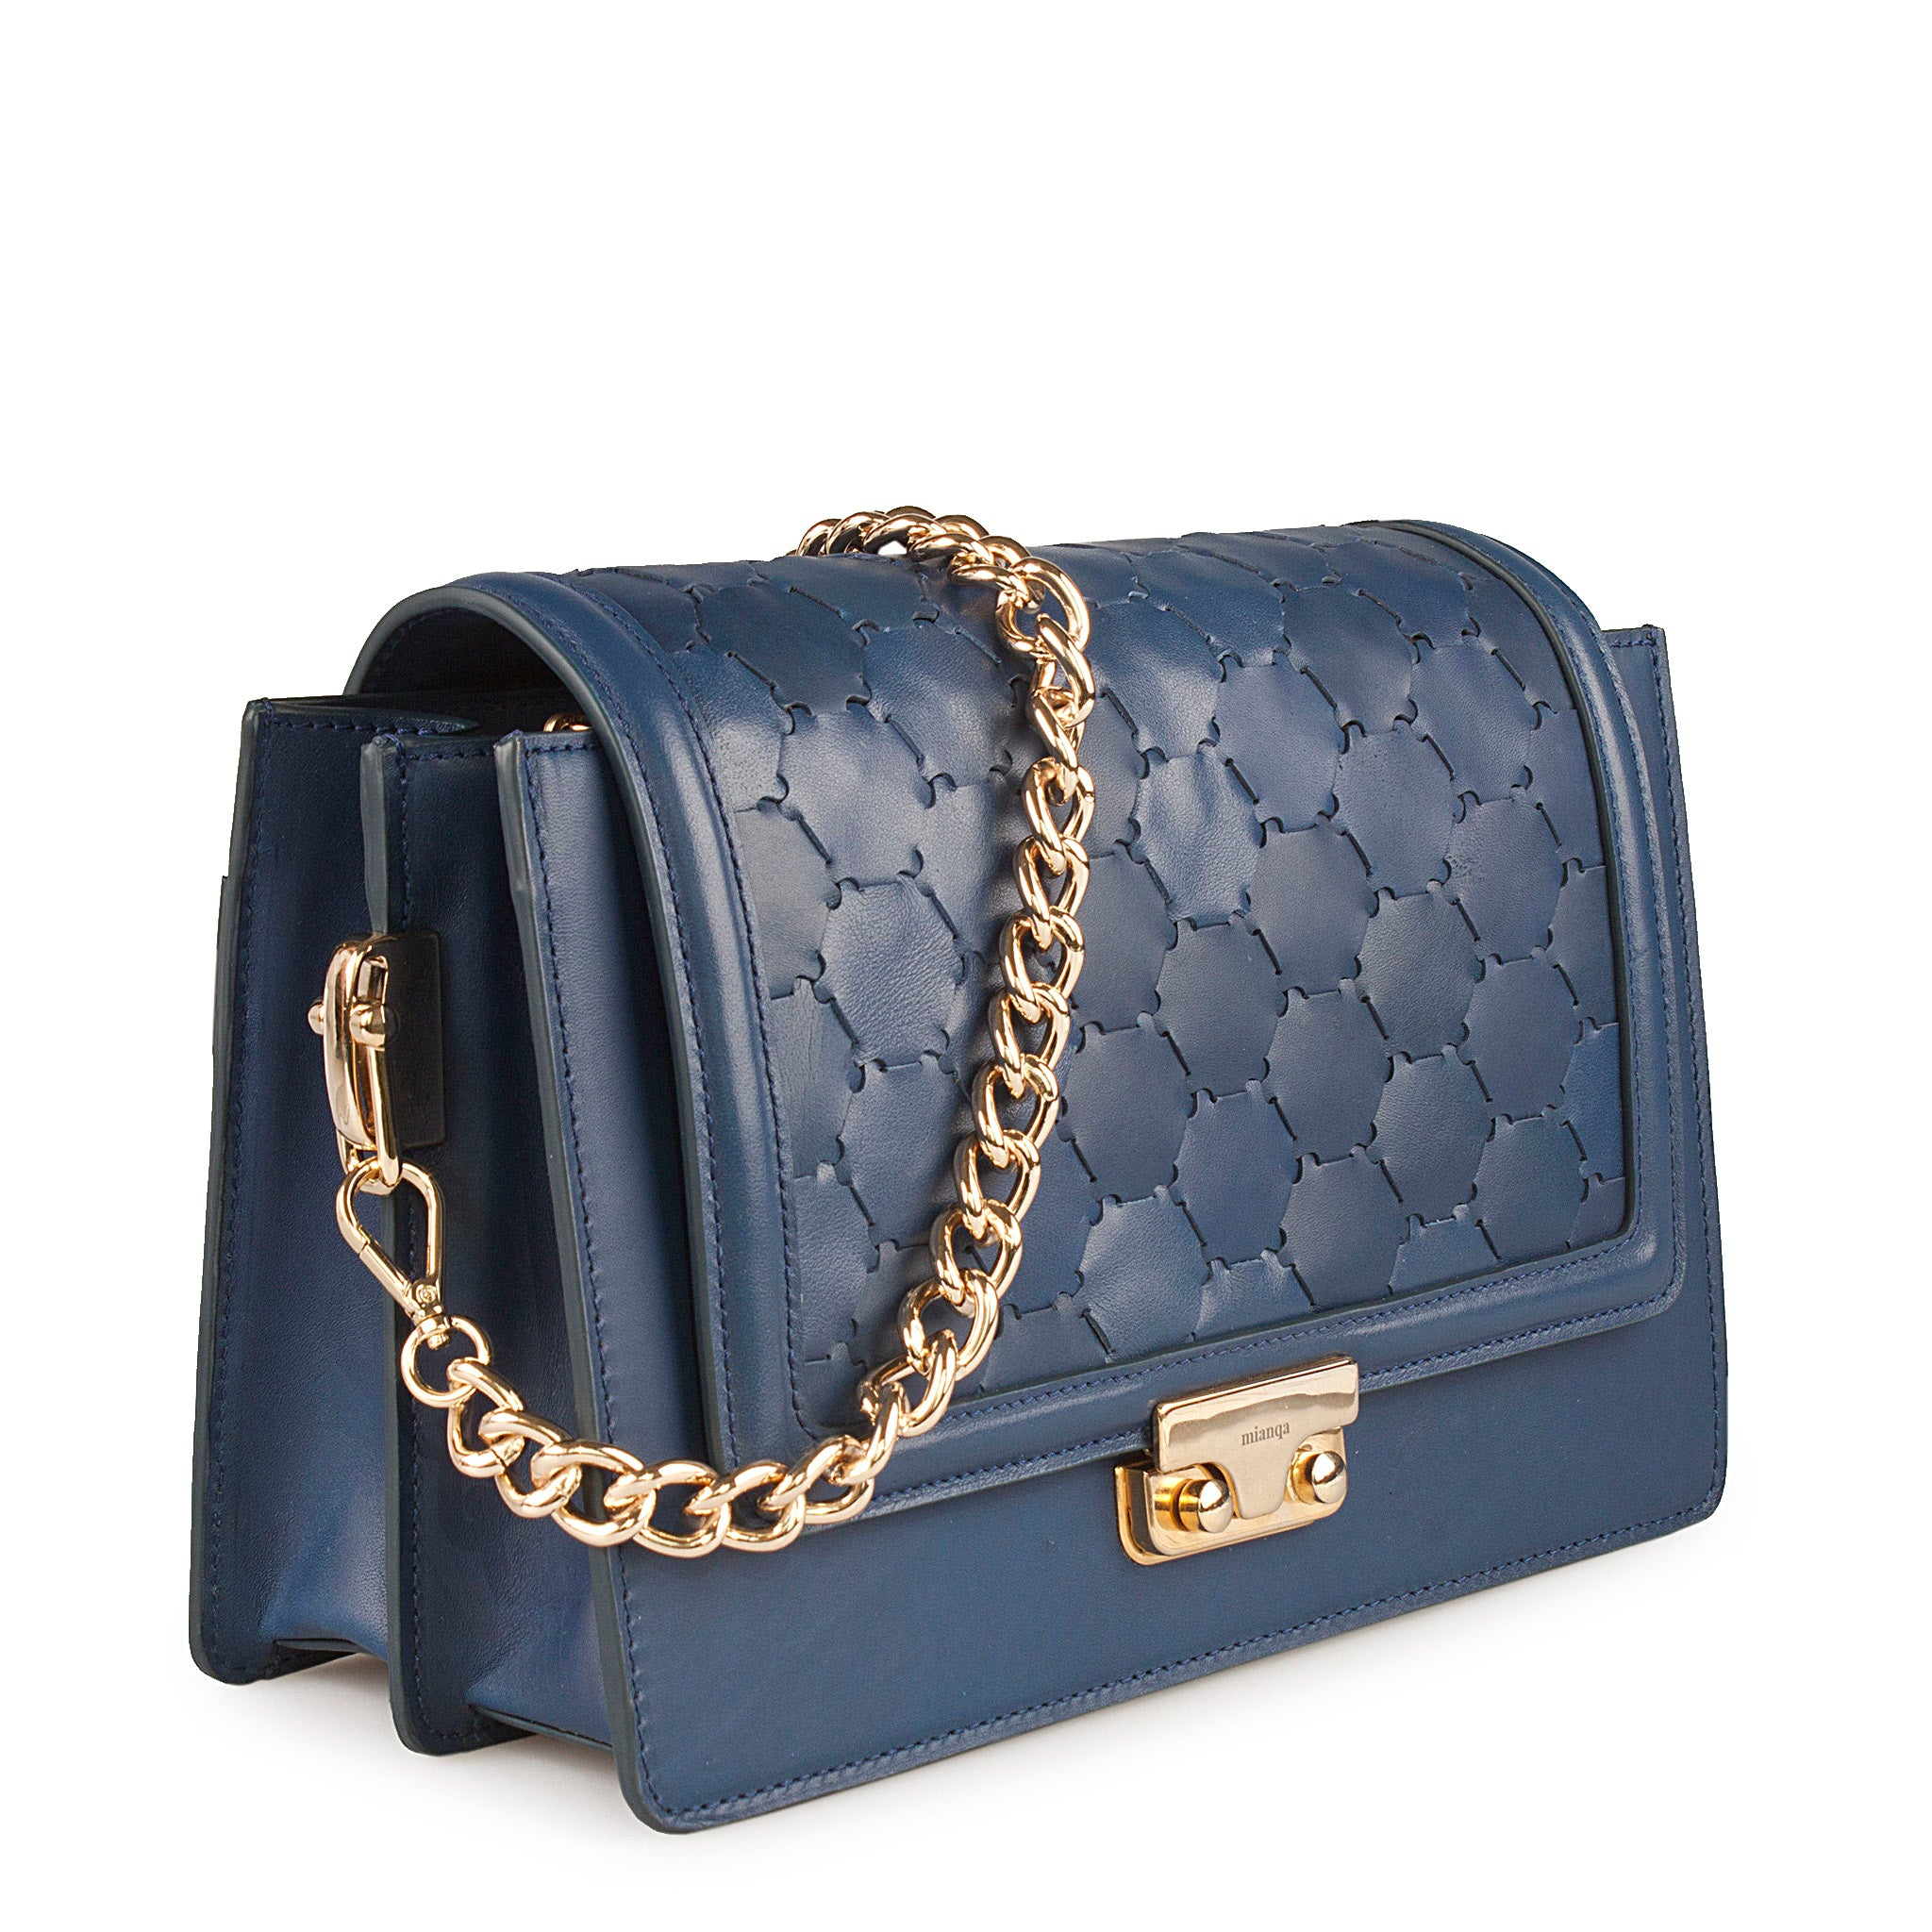 blue luxury leather crossbody bag with handwoven flap and chain handle